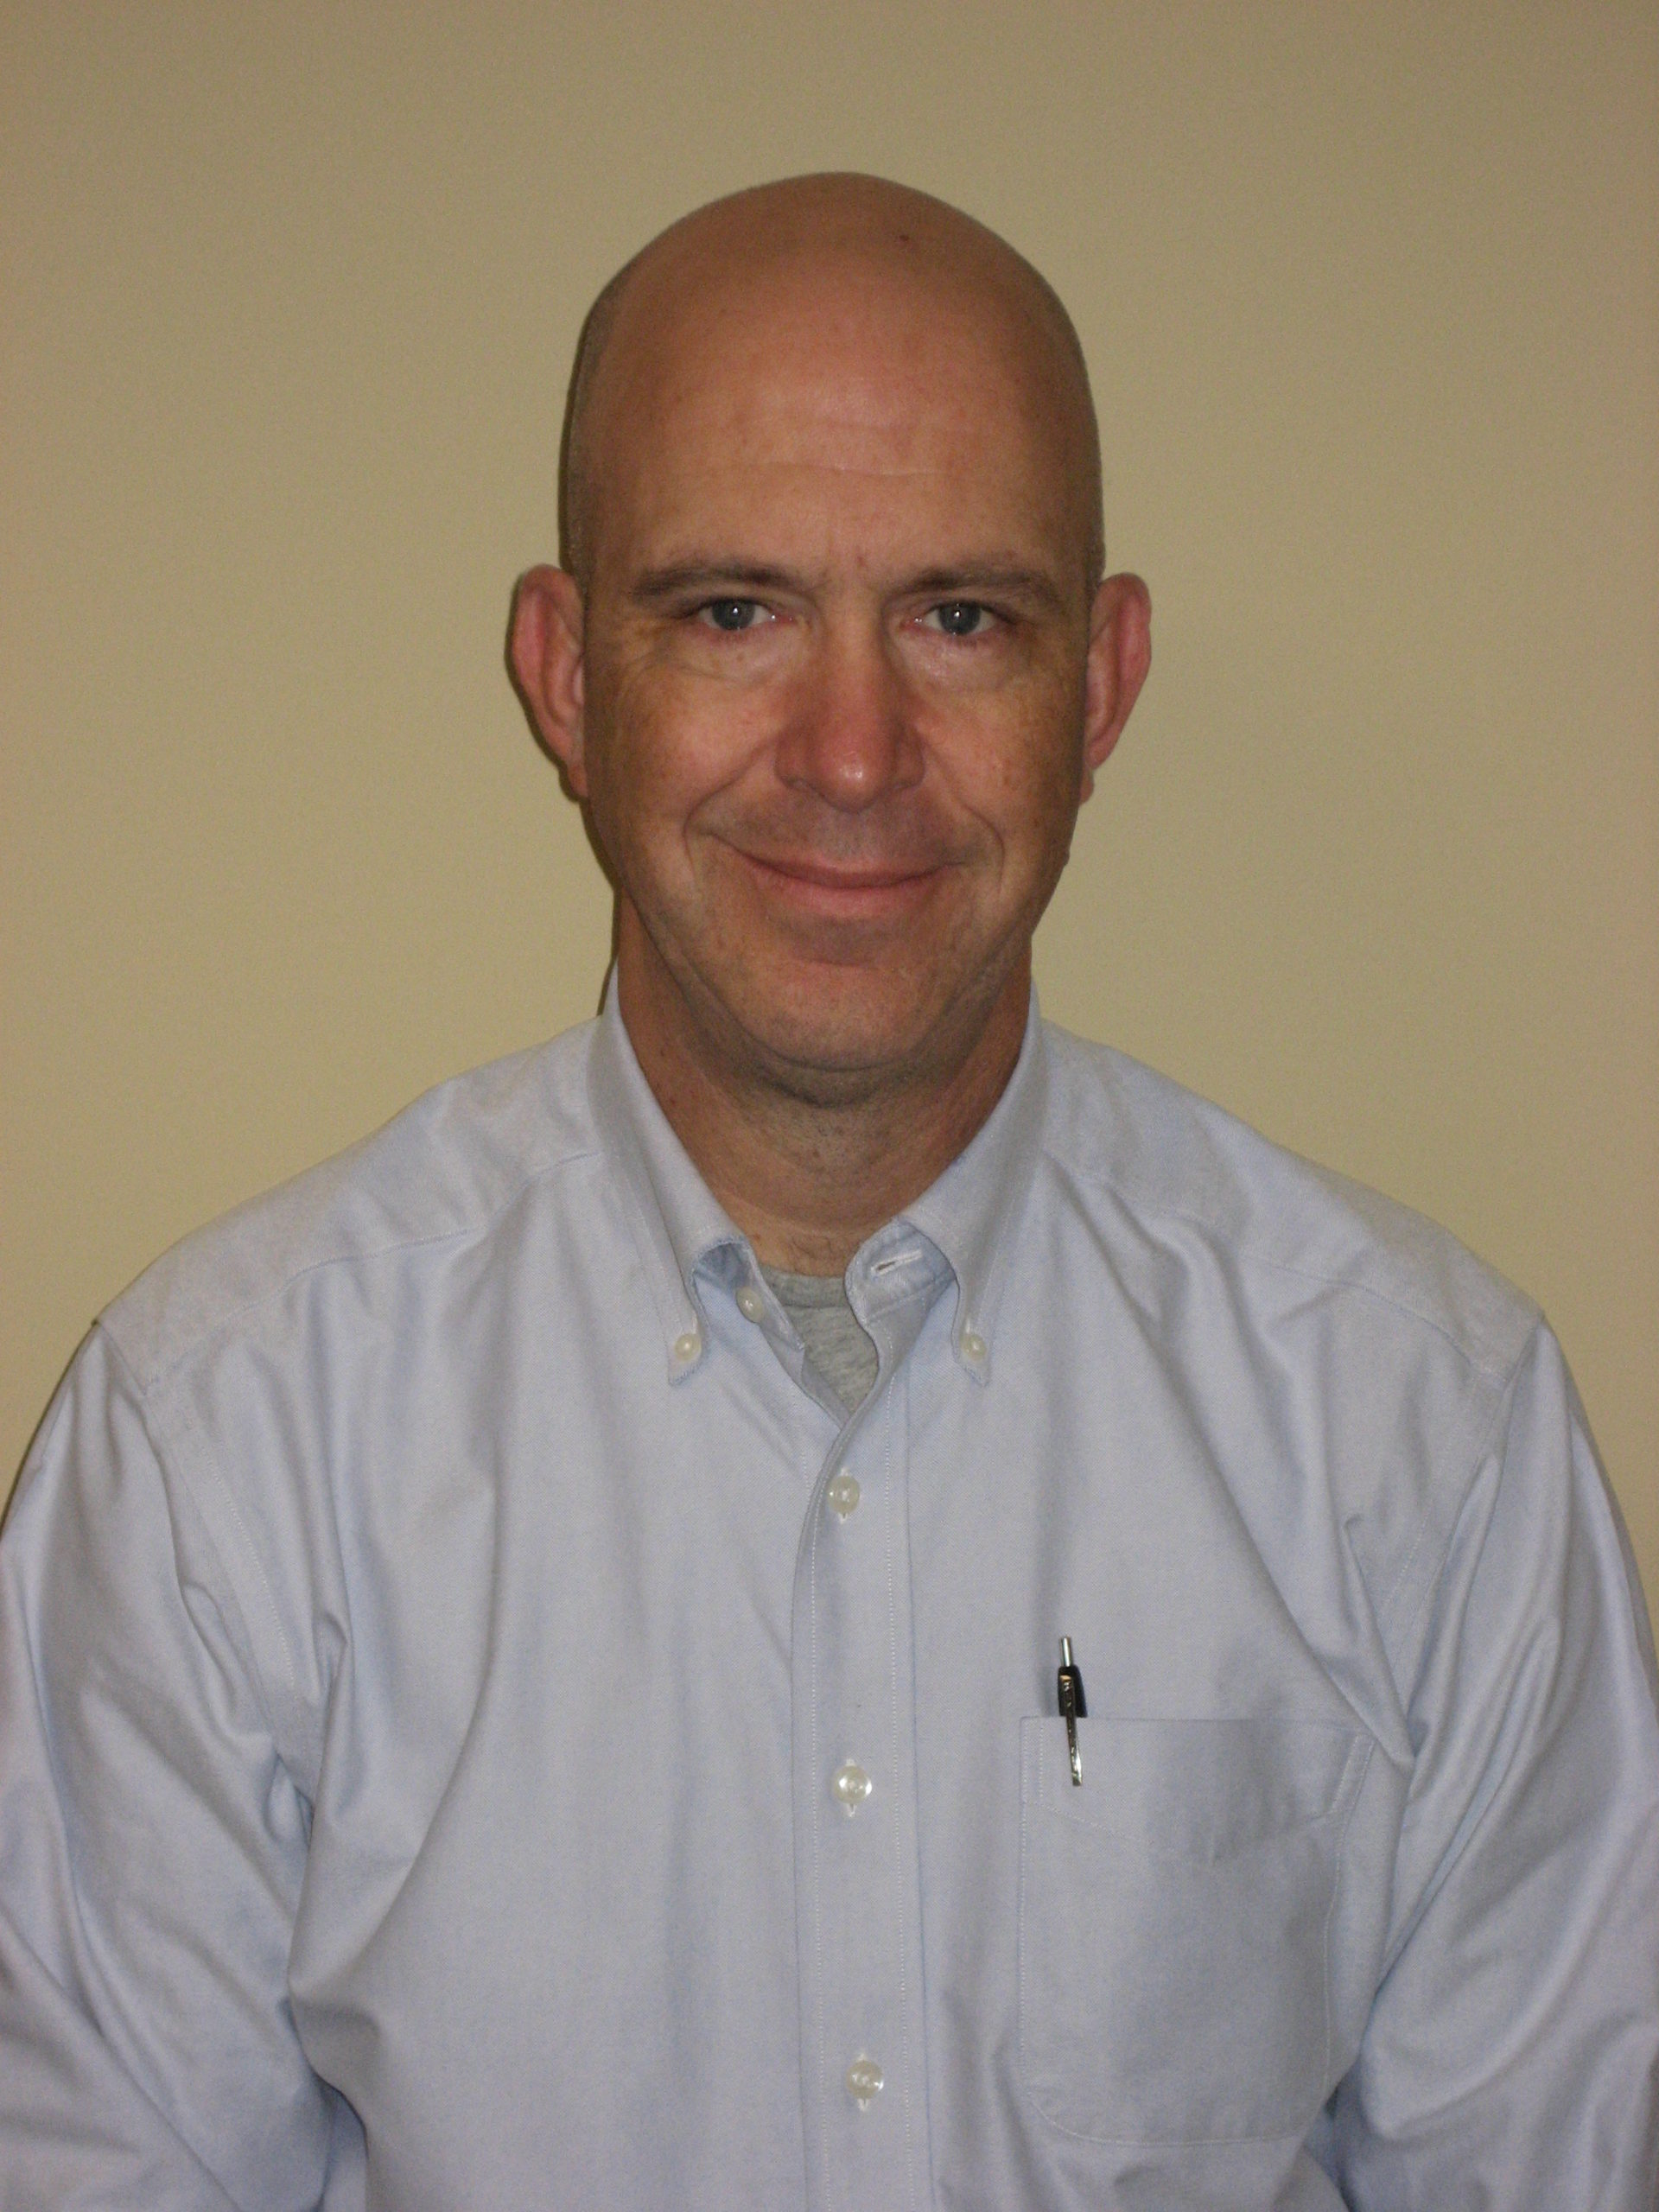 Christopher Burns, APRN